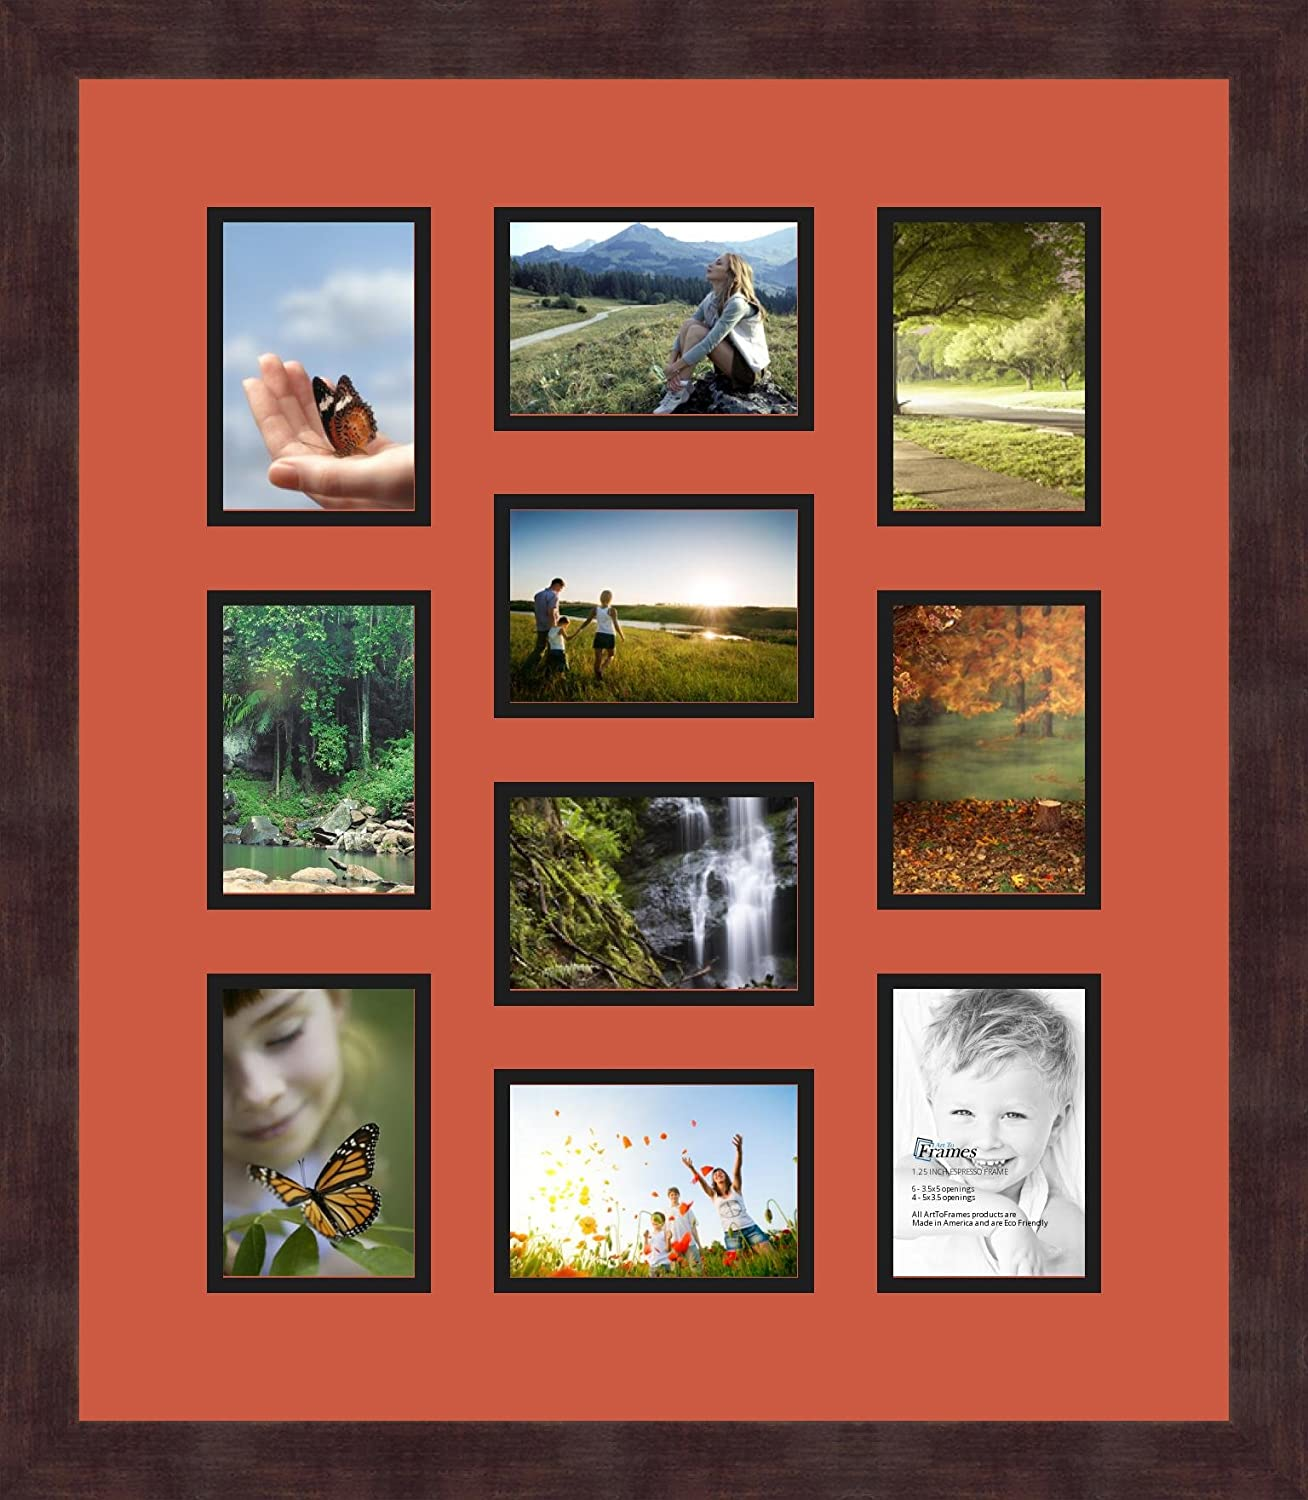 art to frames double multimat 445 736 89 frbw26061 collage frame photo mat double mat with 10 4x5 openings and espresso frame wall tabletop frames ocean club estates